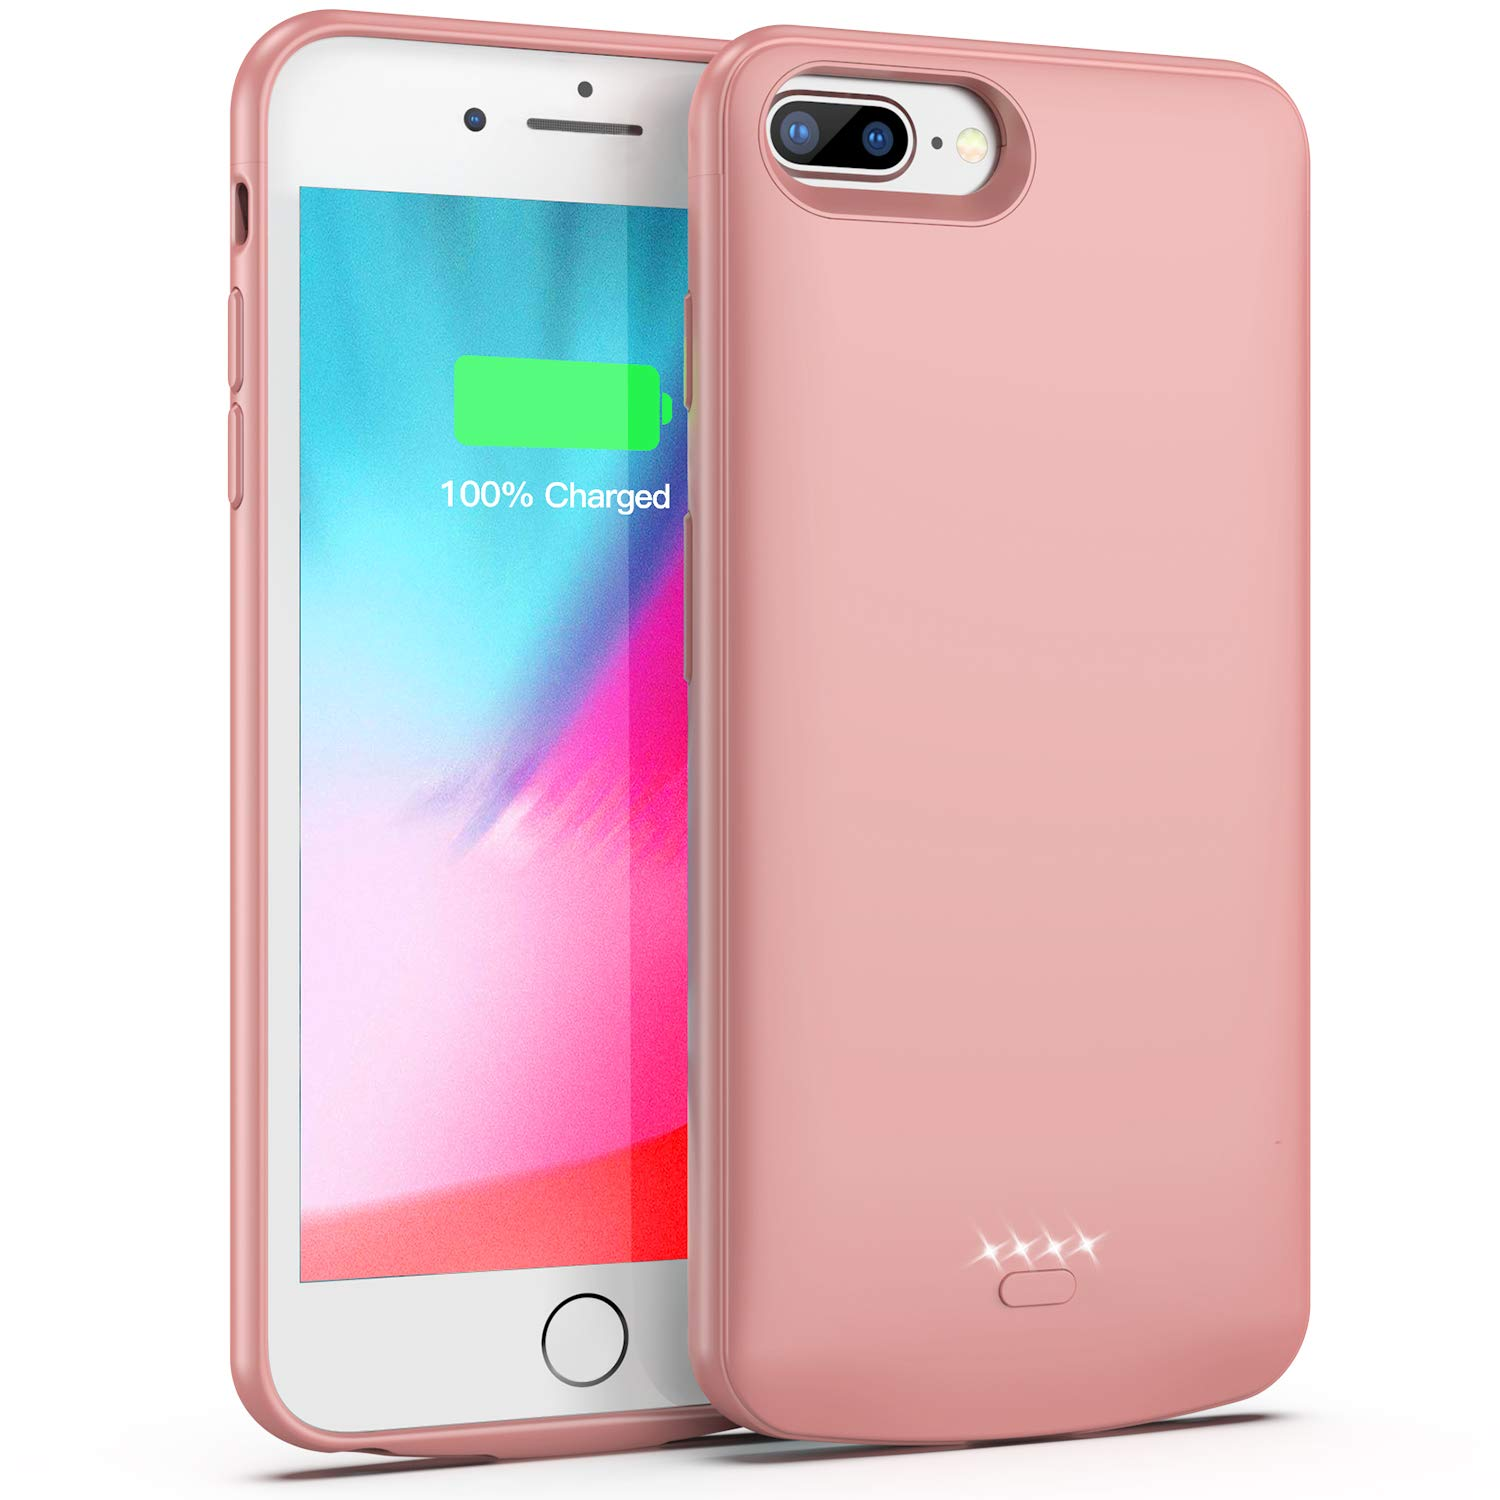 Battery Case for iPhone 7 Plus/8 Plus/6 Plus/6s Plus,5500mAh Portable Protective Charging Case Compatible with iPhone 7 Plus/8 Plus/6 Plus/6s Plus (5.5 inch) Rechargeable Extended Battery (Rose Gold) by Lonlif